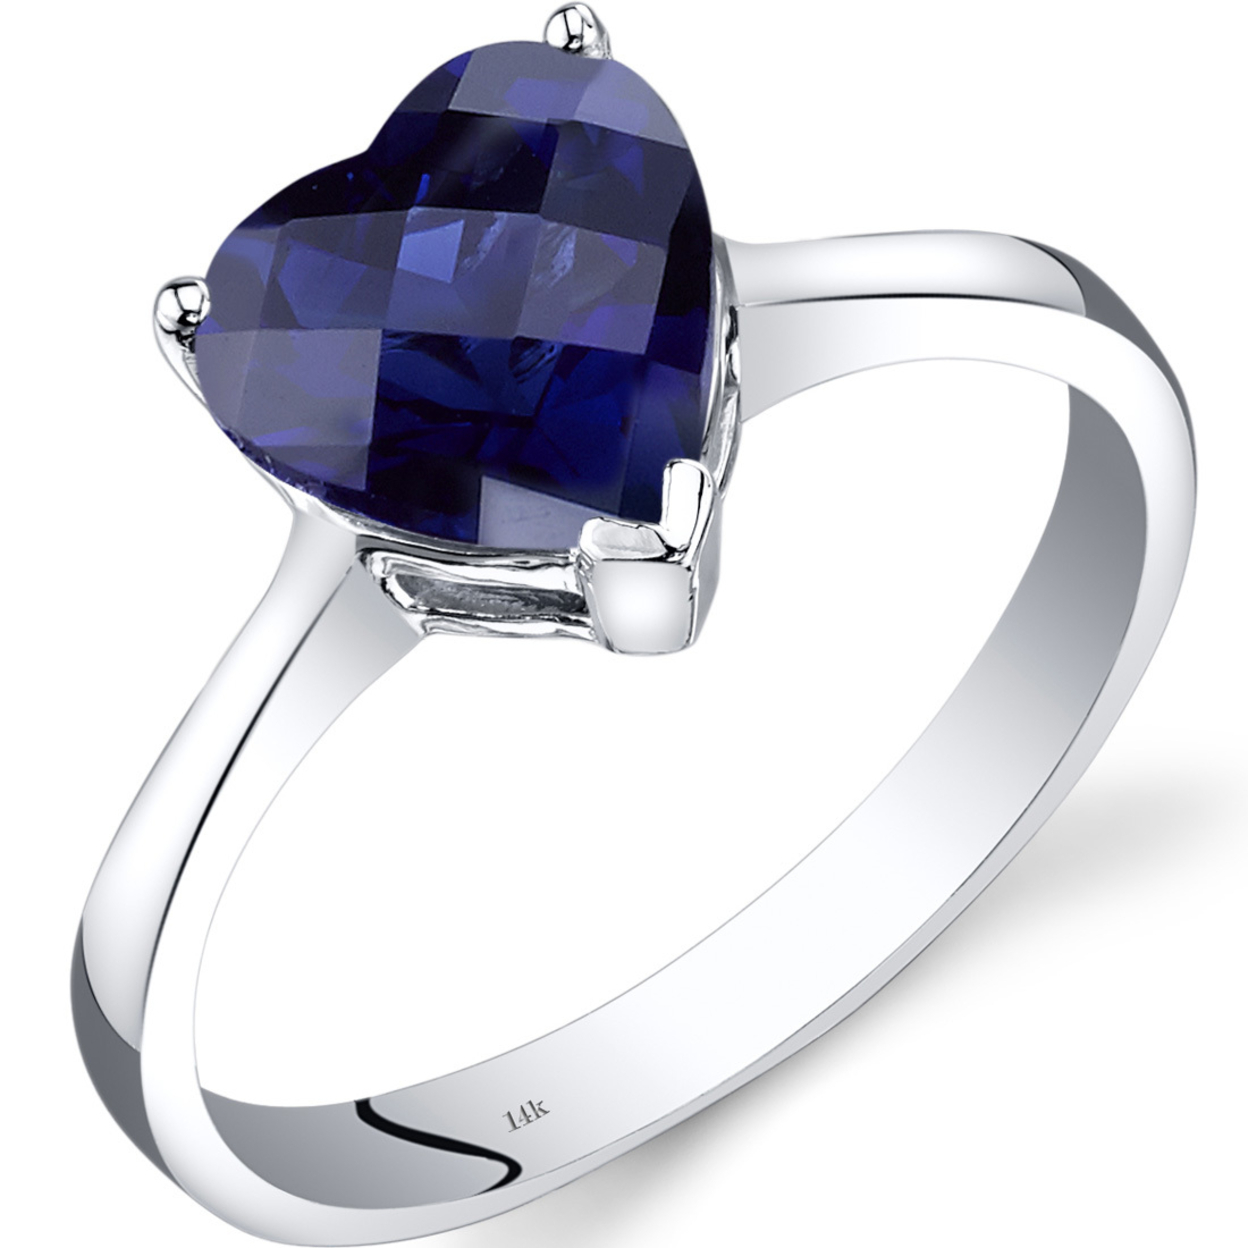 14k White Gold Created Sapphire Heart Solitaire Ring 2.50 Carat R62340